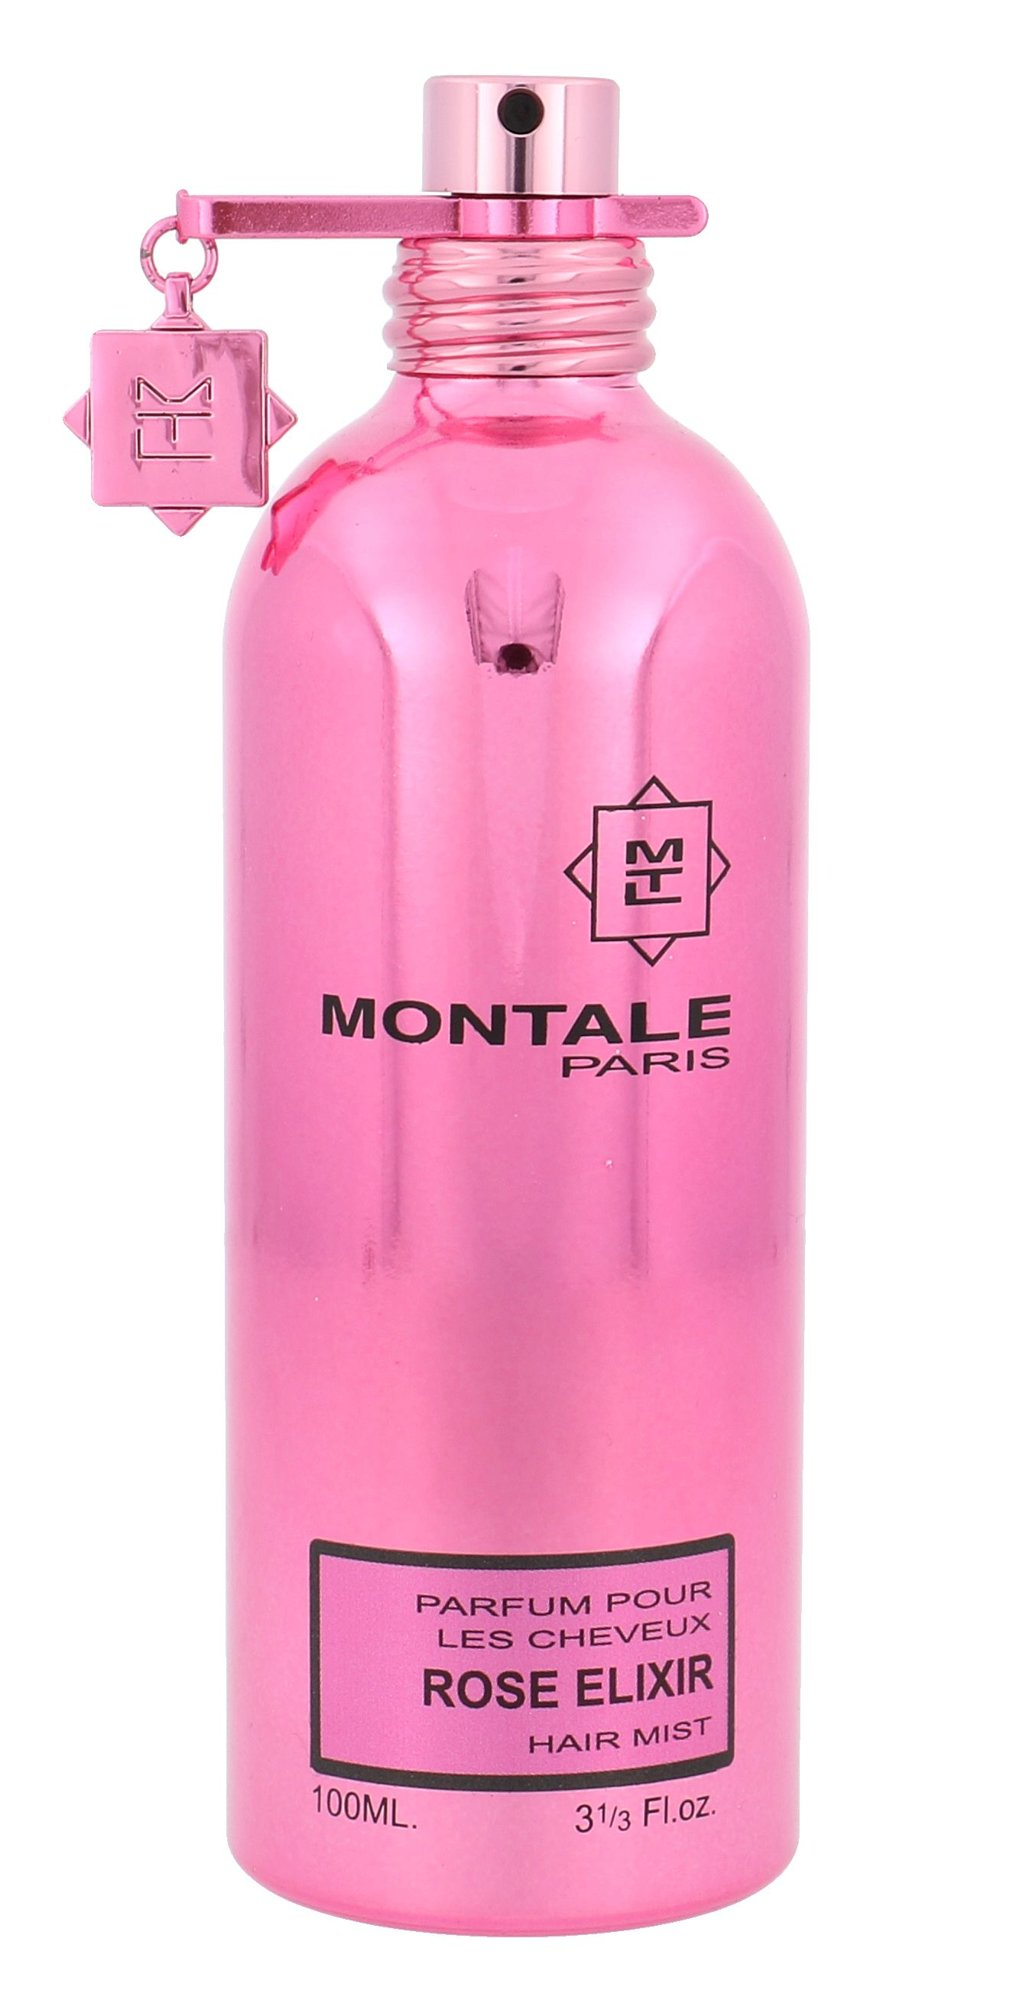 Montale Paris Roses Elixir Hair mist 100ml